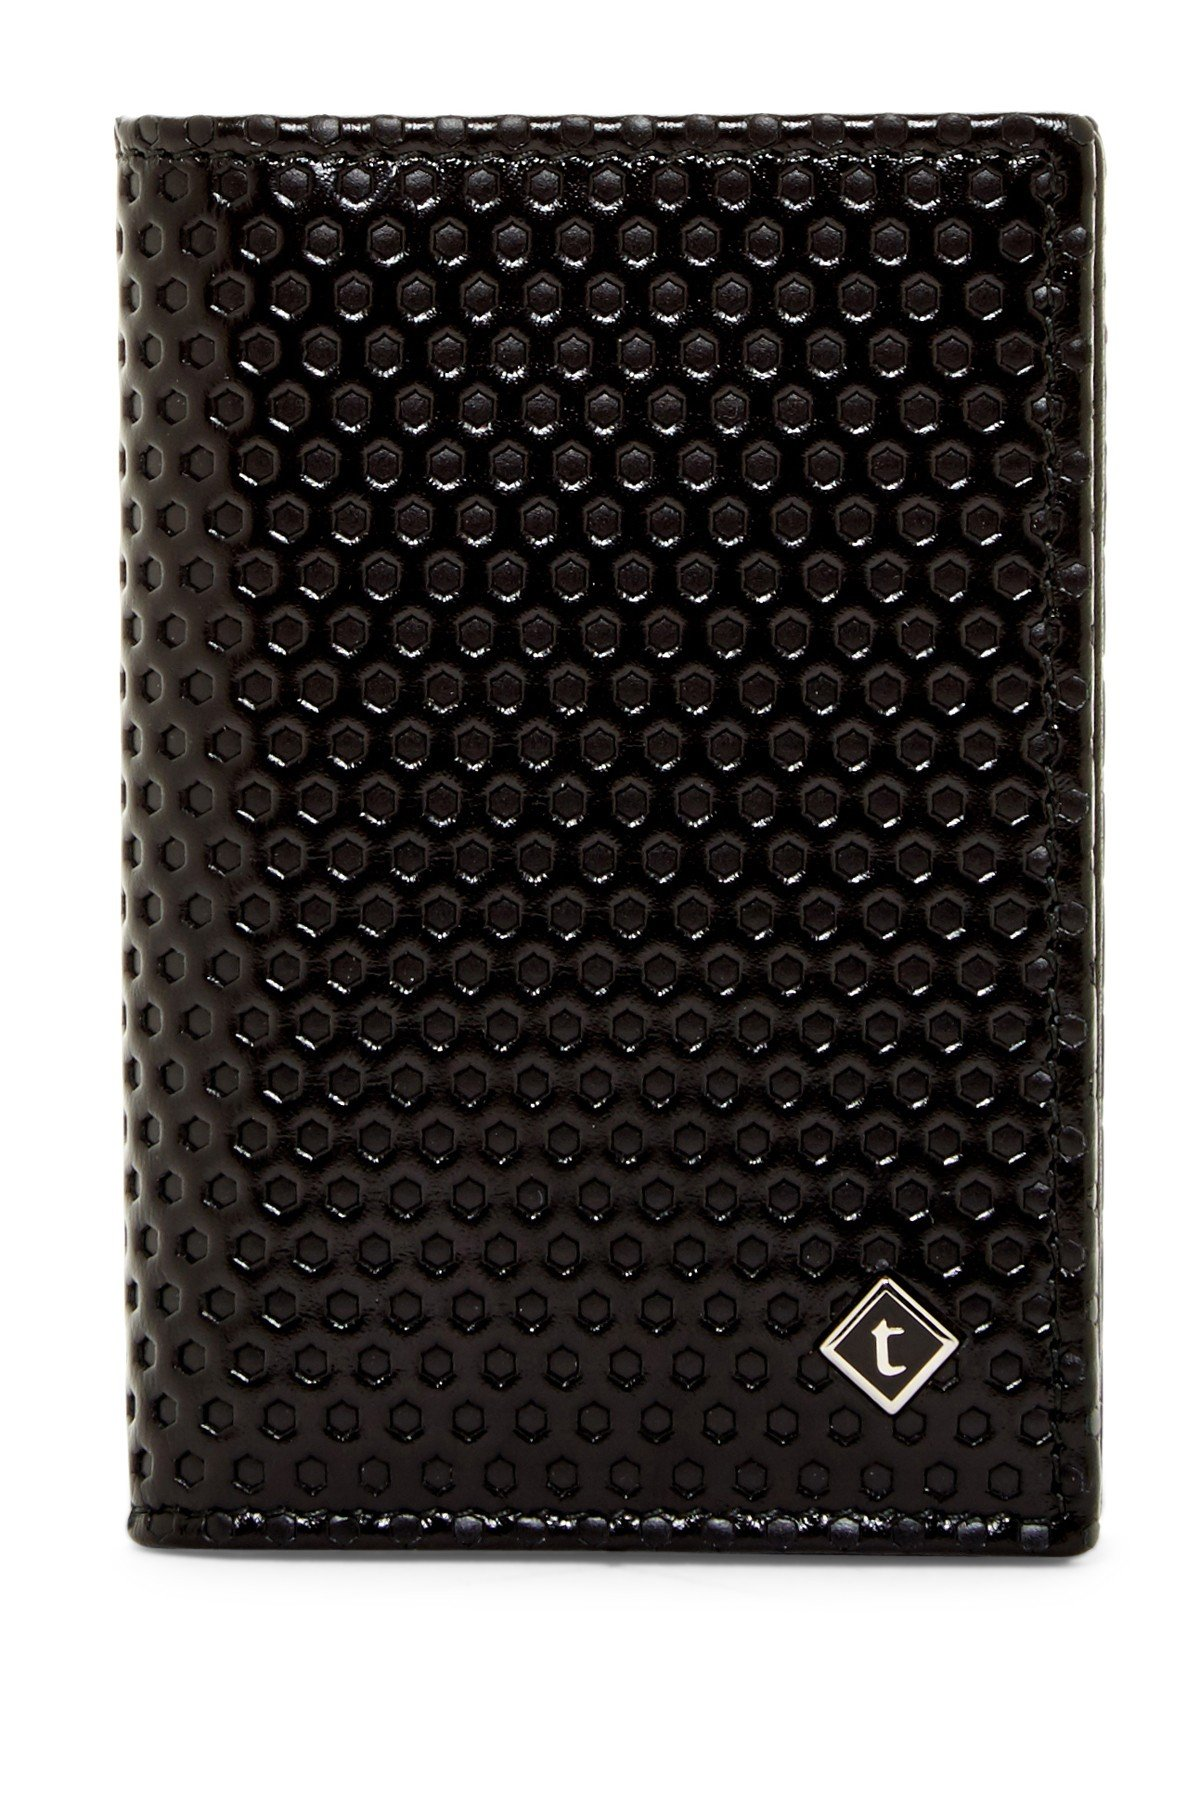 a.testoni Men's Nido Ape Calf Leather Business Card Case Wallet, OS, Nero